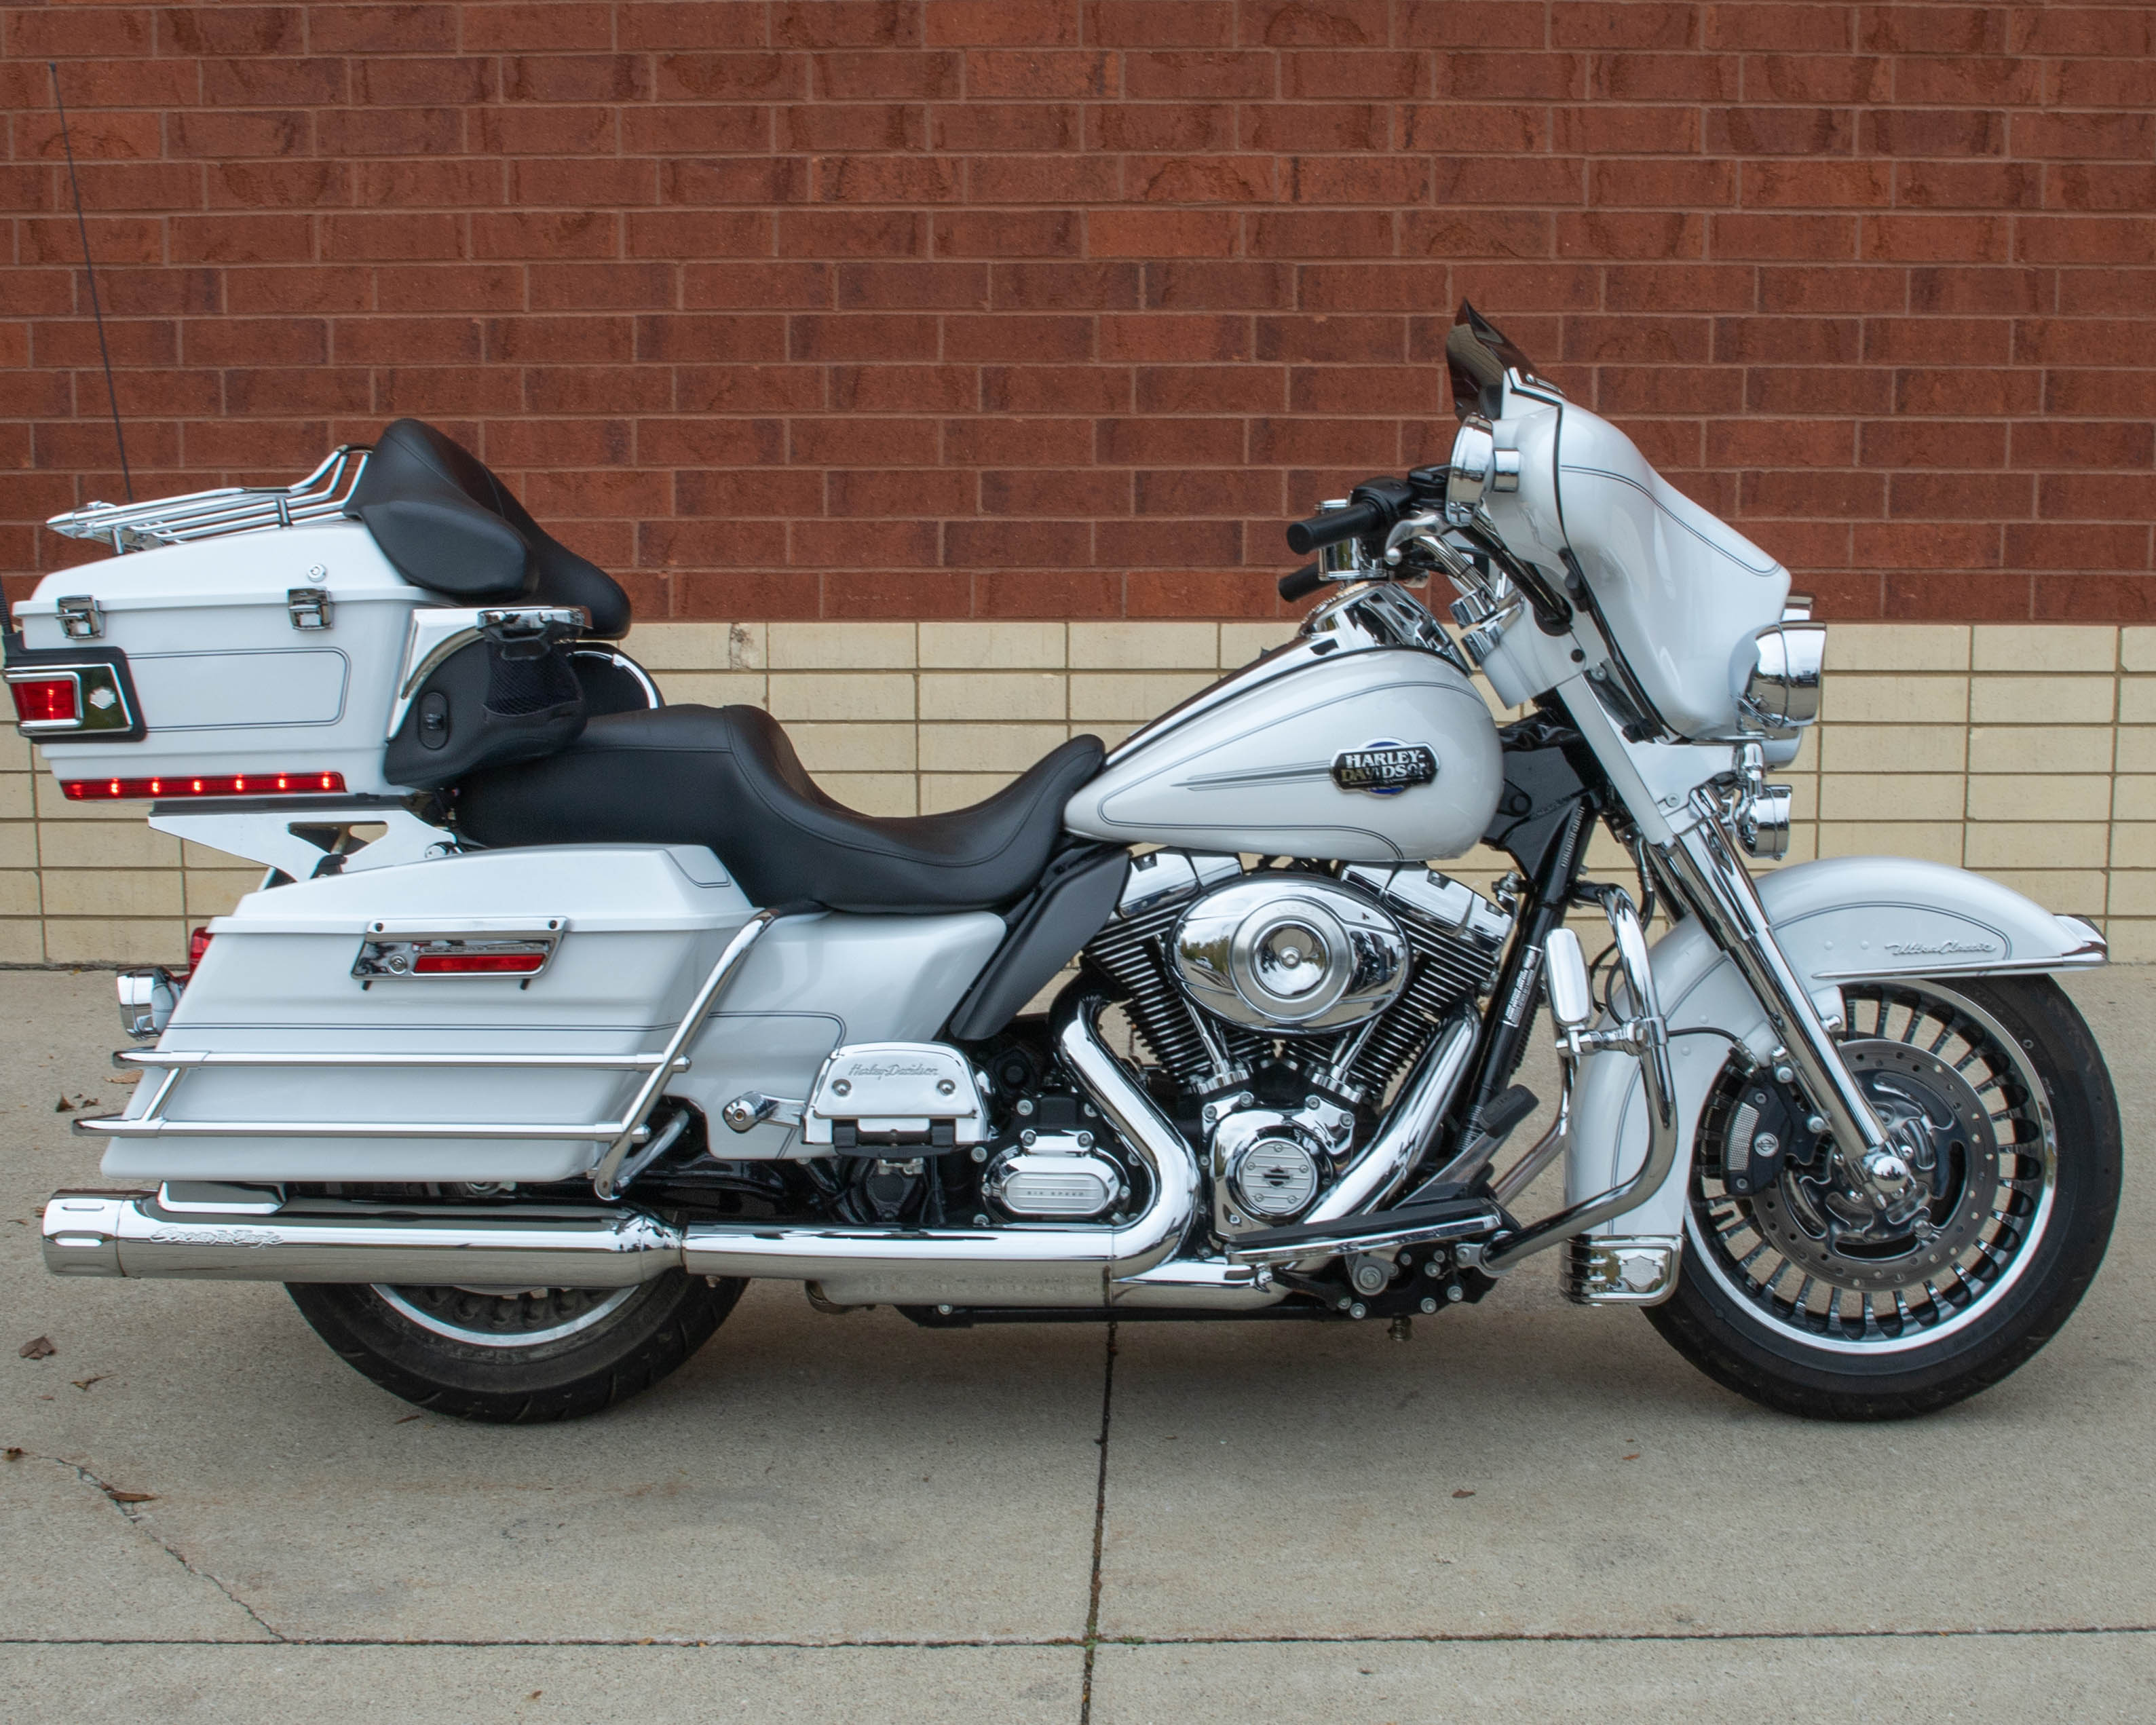 Pre-Owned 2012 Harley-Davidson Electra Glide Ultra Classic